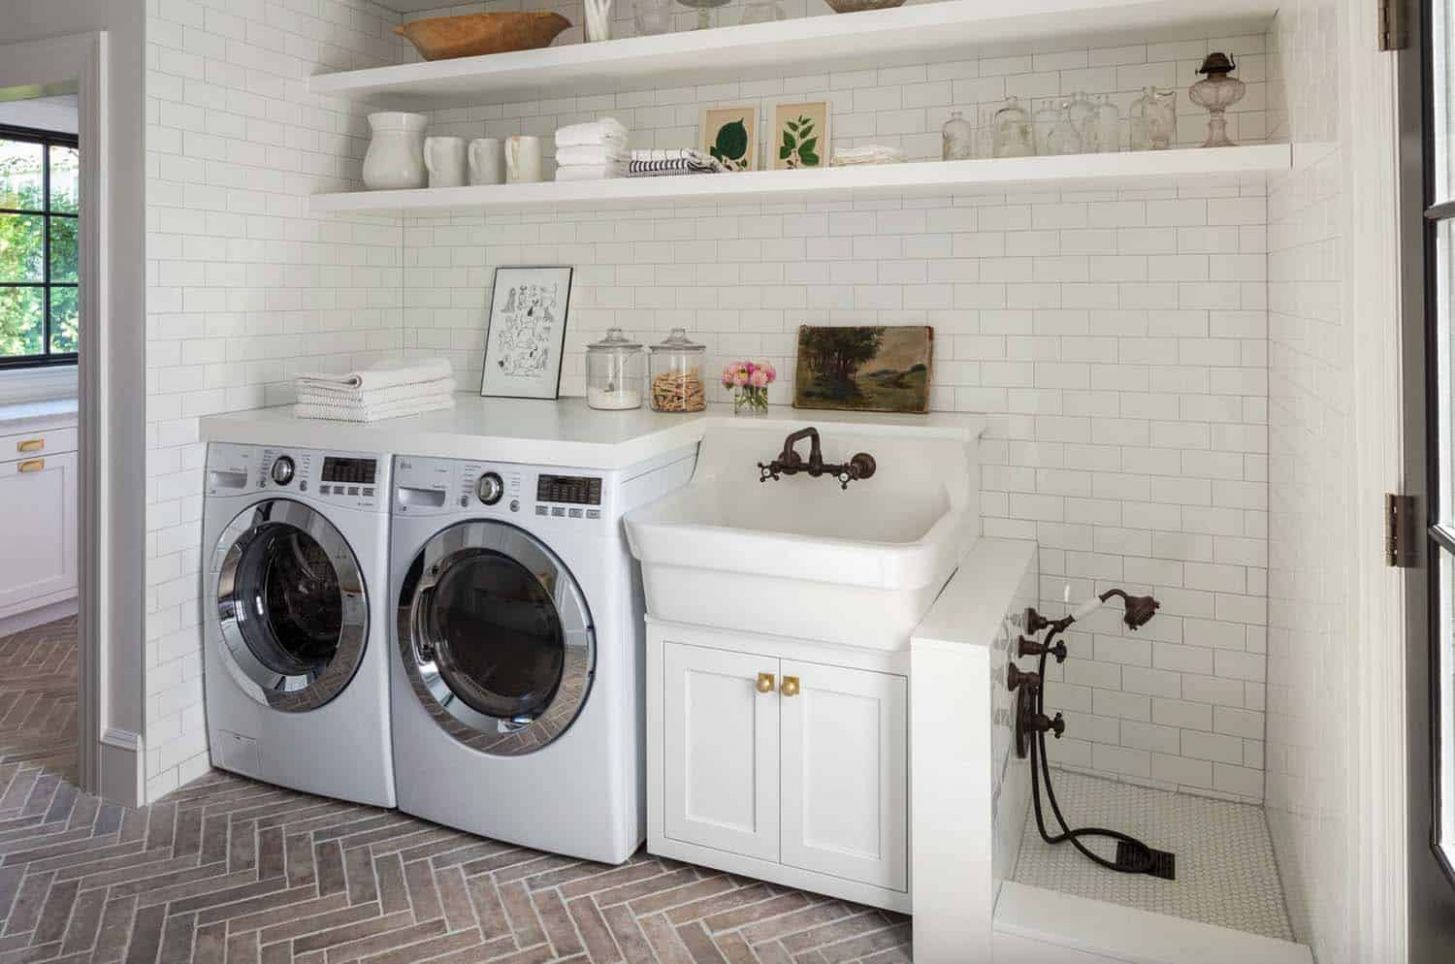 10 Functional And Stylish Laundry Room Design Ideas To Inspire - new laundry room ideas